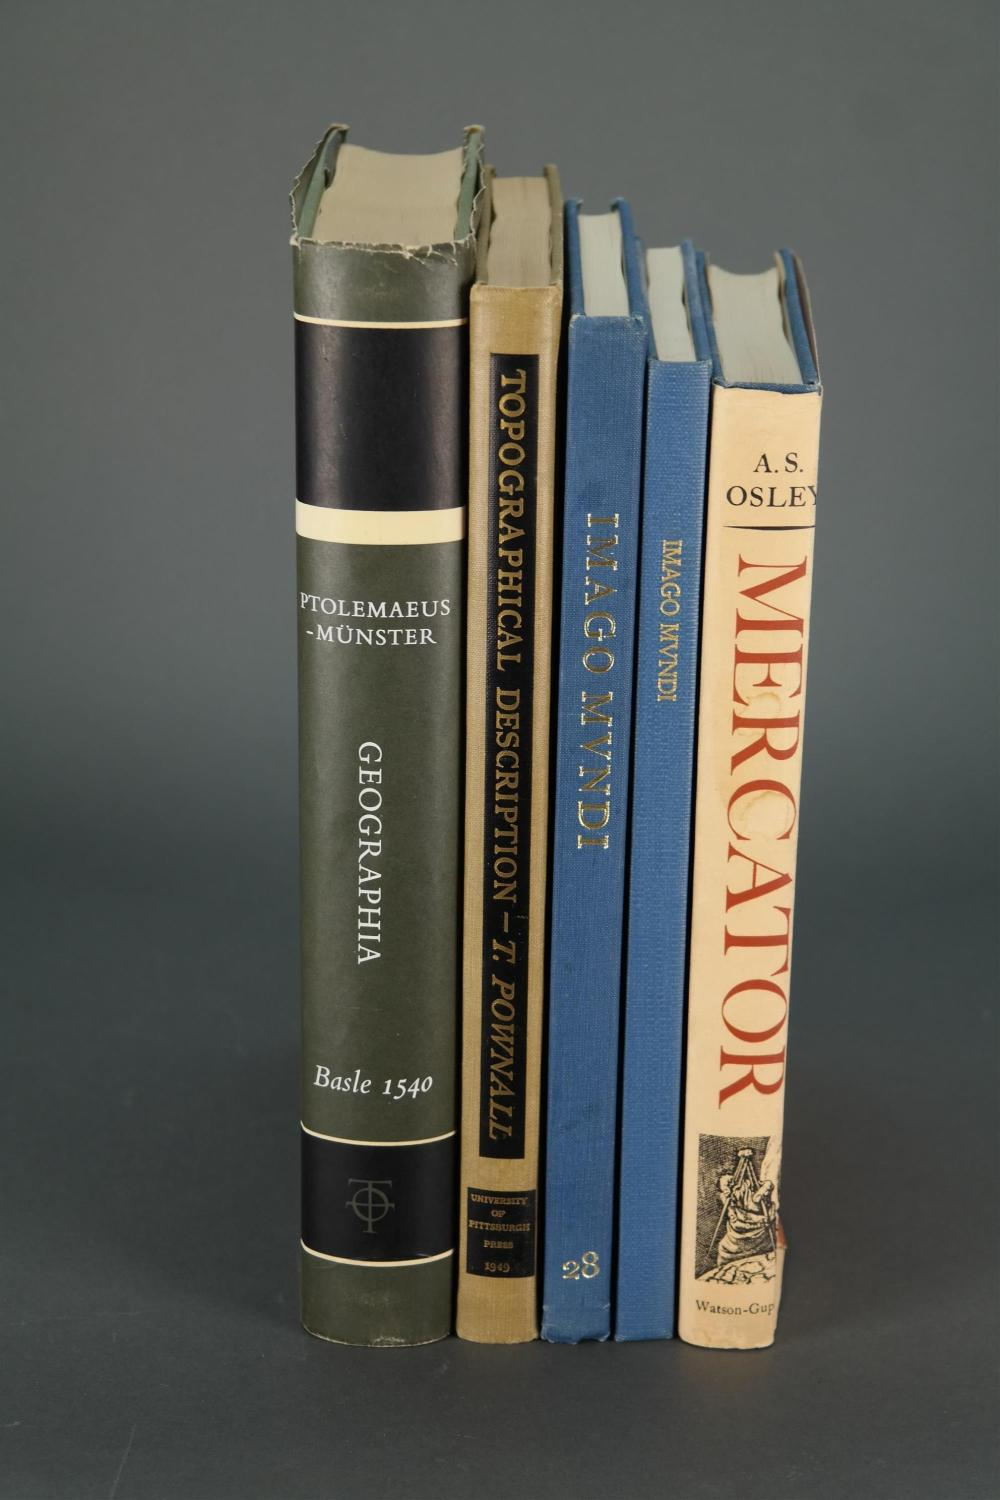 Lot 229: 5 vols on Geography and Cartography.